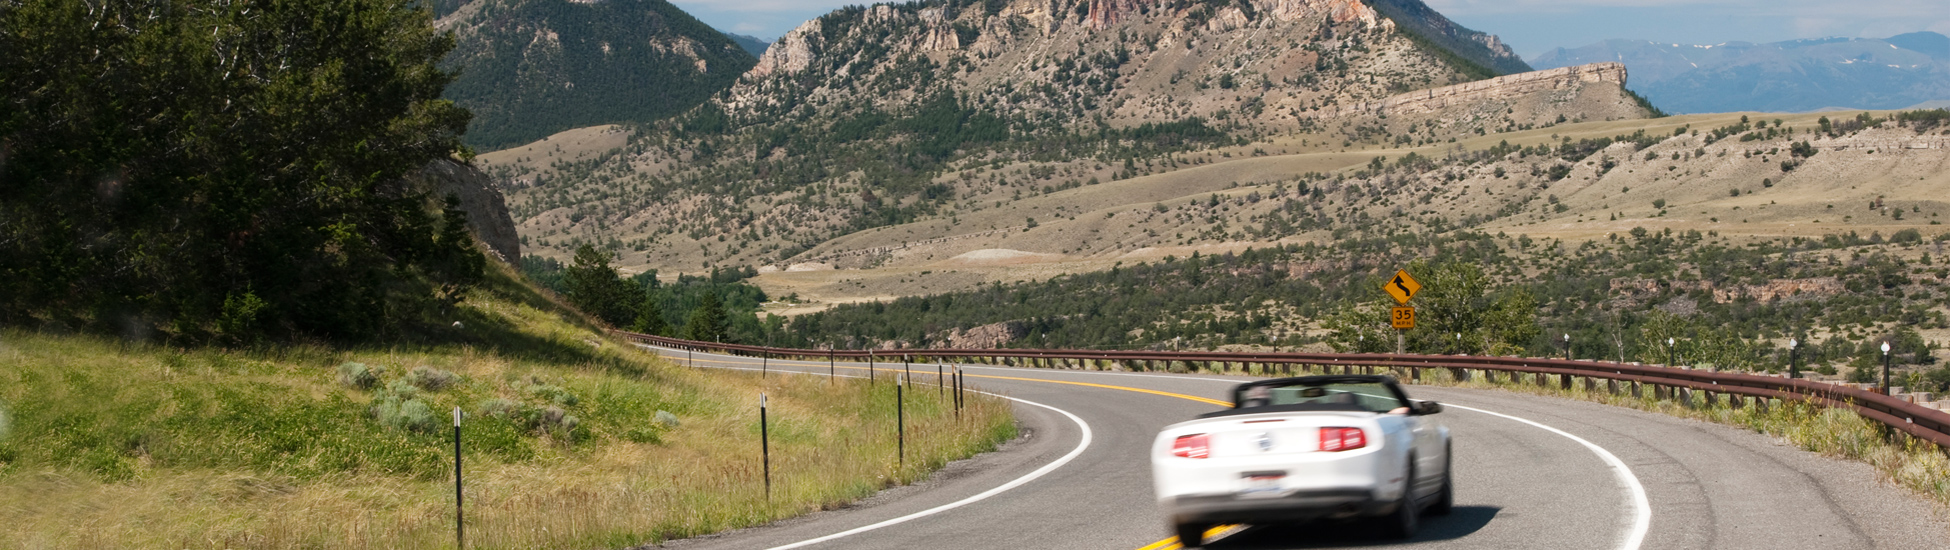 banner-cabriolet-route-montagne--photosbyjim-istock